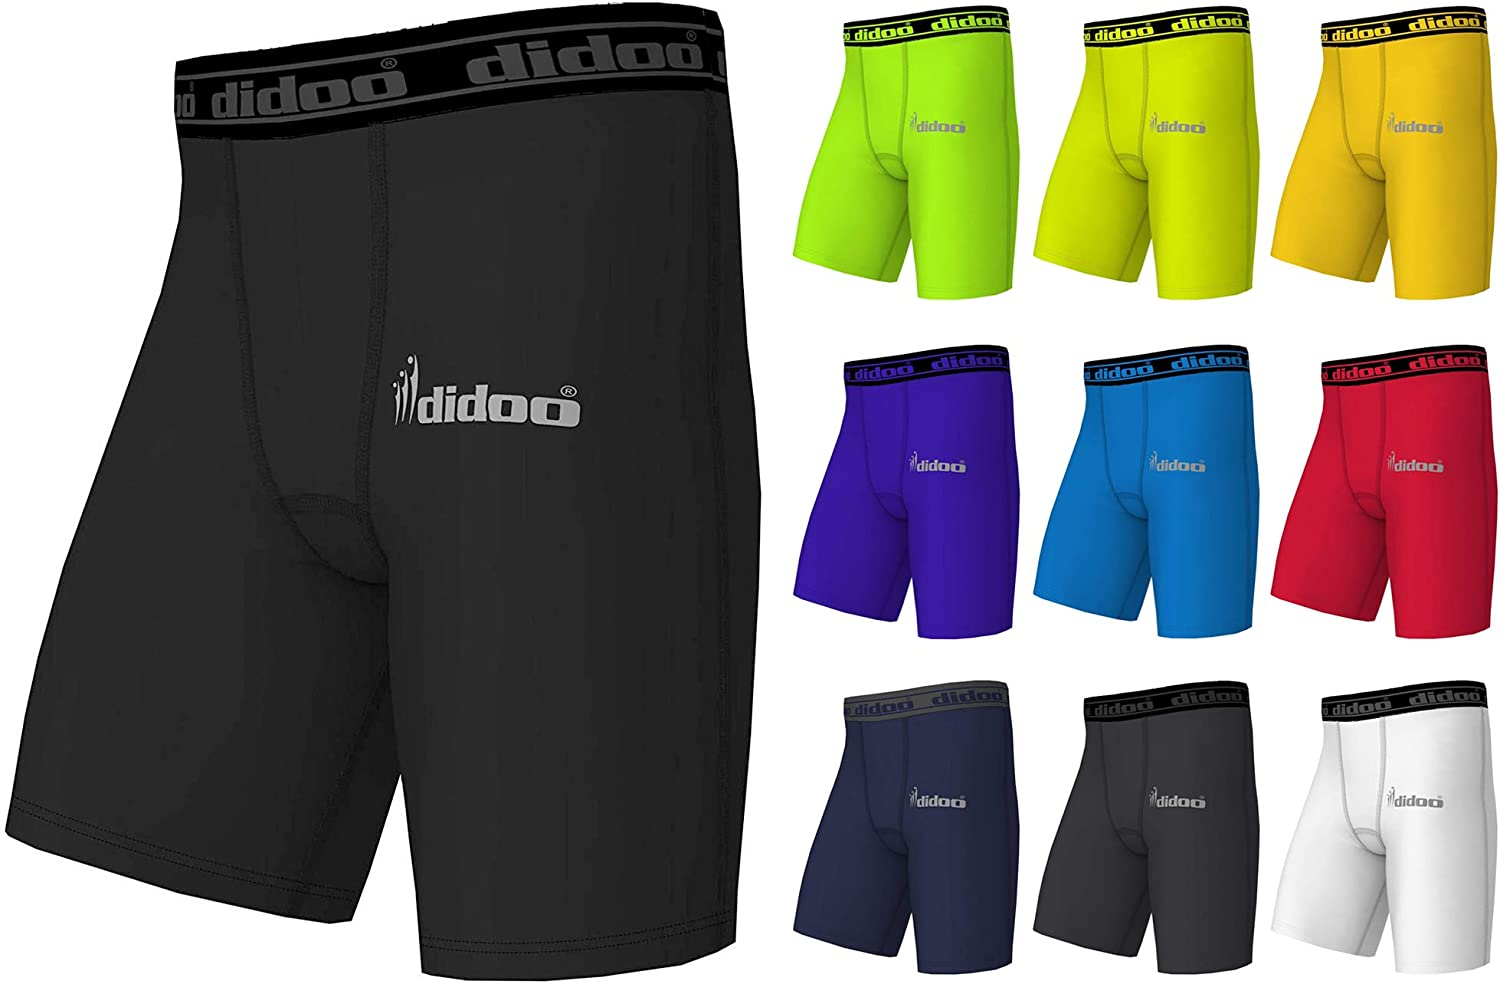 Didoo homme compression short base couches peau collants fit running sports pants